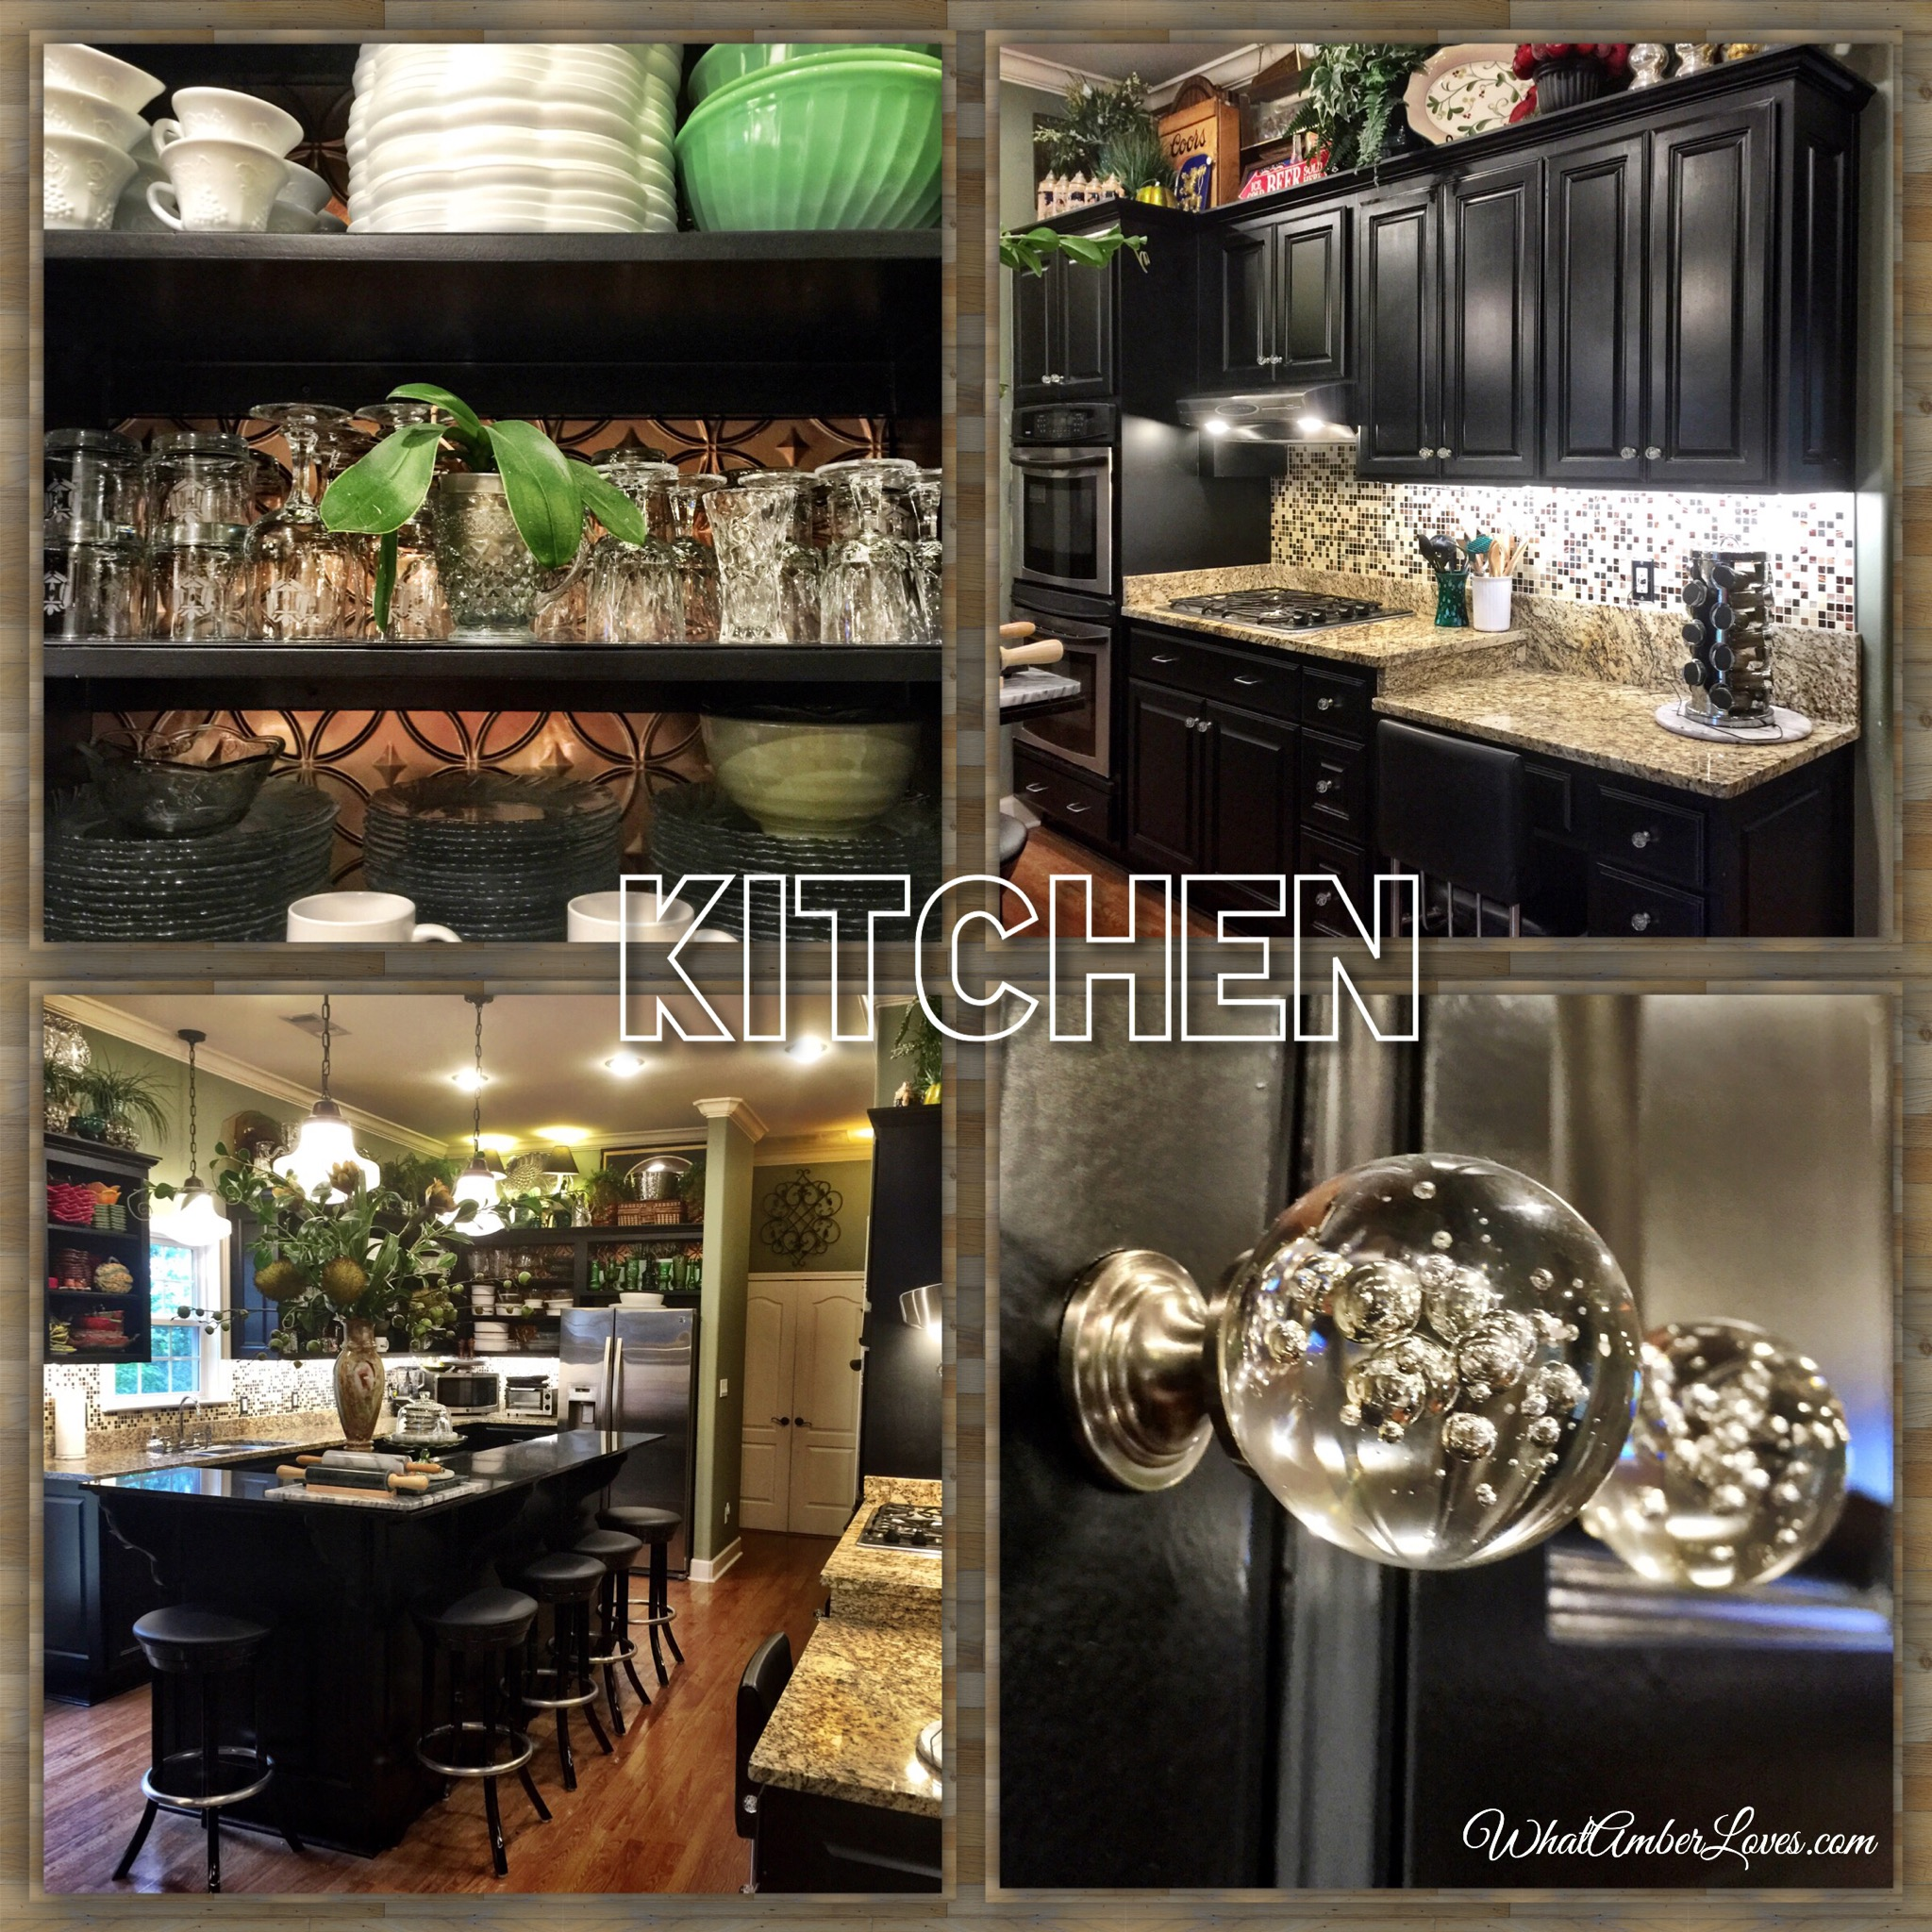 My Kitchen Update!